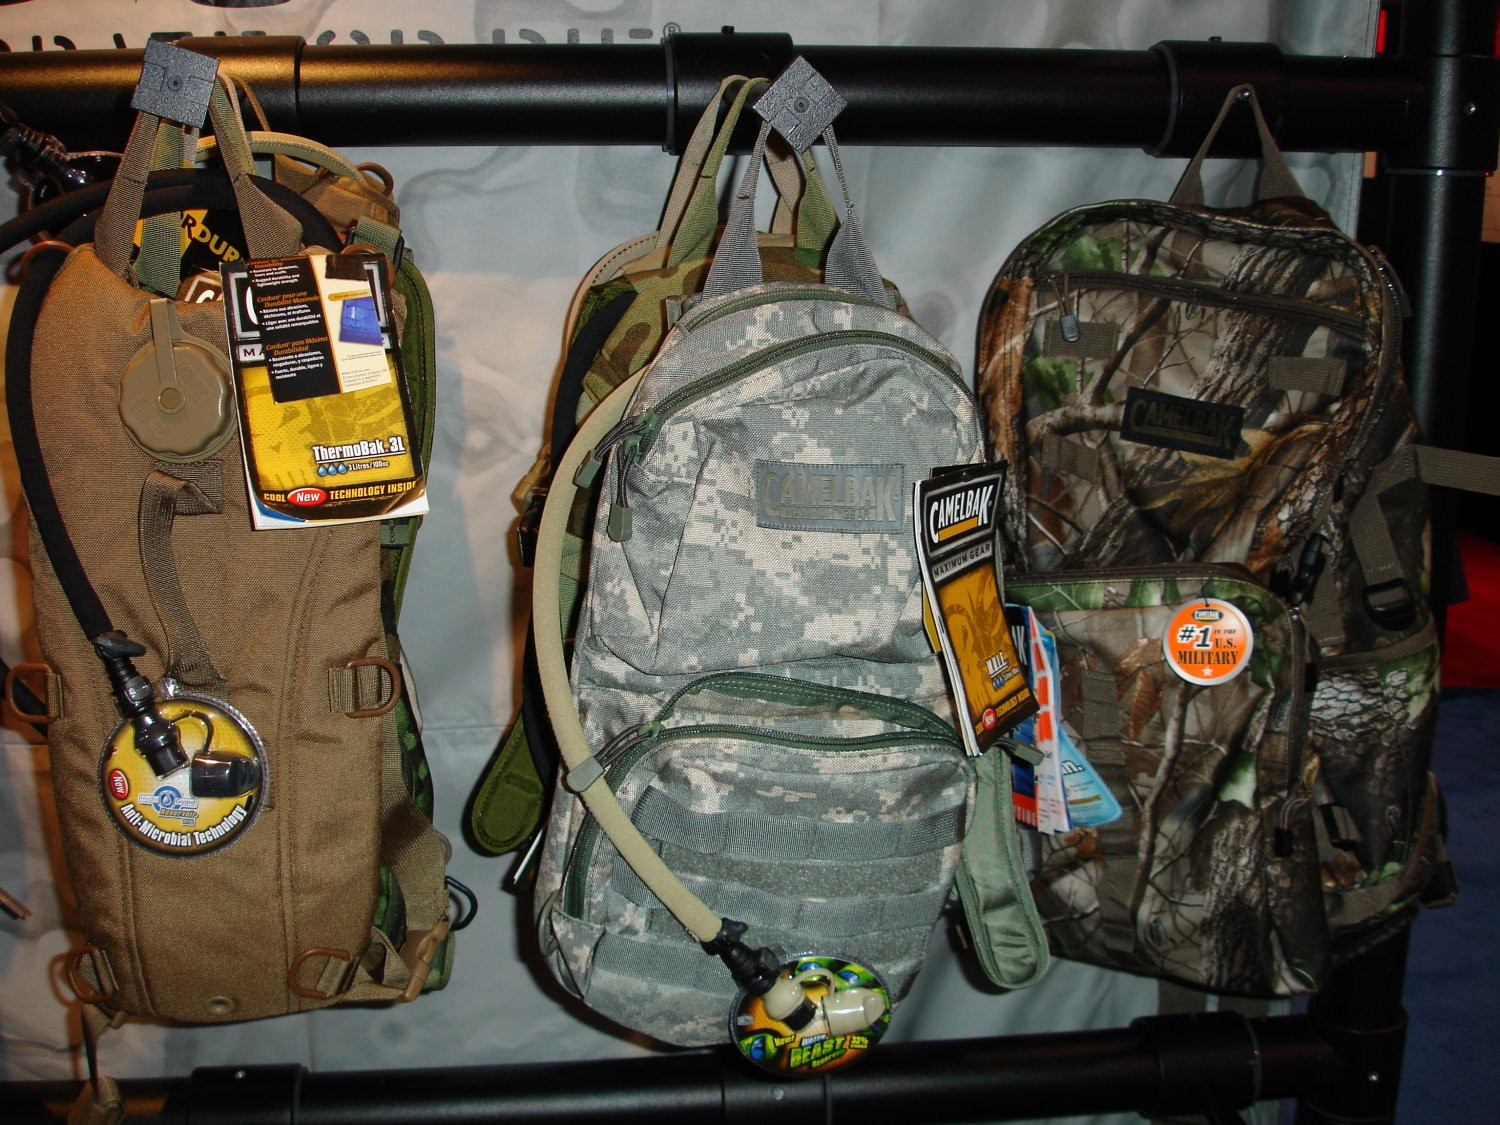 Camelbak%20ThermoBak%203L%20and%20Mule 1 <!  :en  >CamelBak Gears Up for U.S. Military SPECOPS and Chemical/Biological Warfare<!  :  >